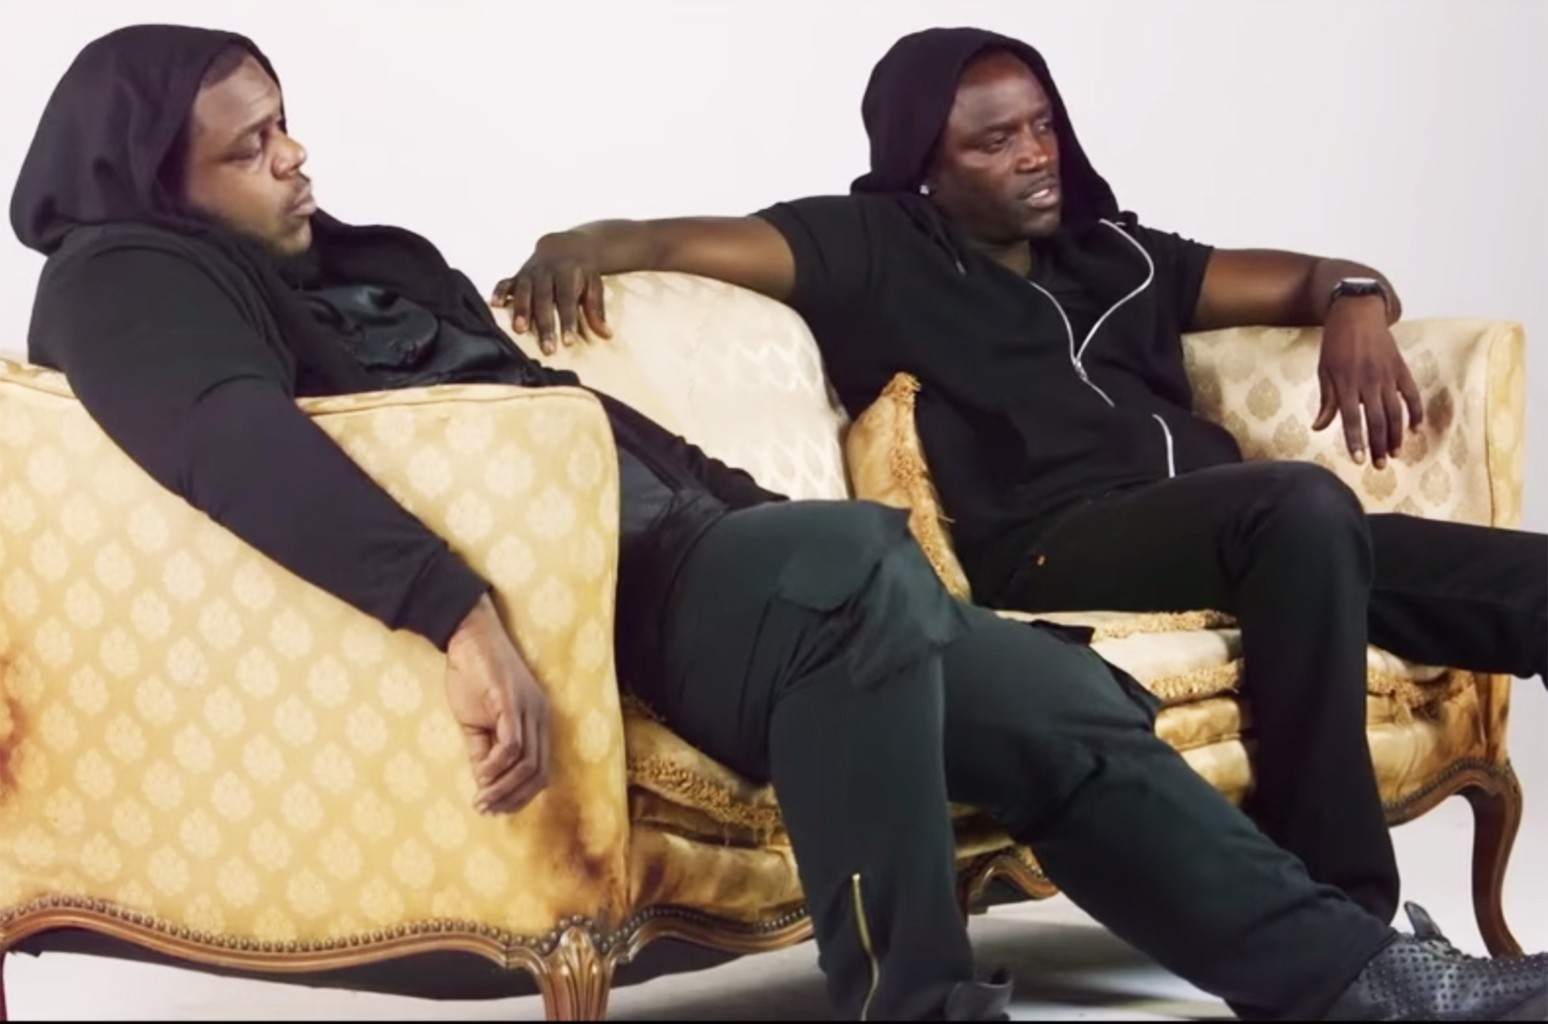 DJ Hardwerk and Akon in the video for Tell Me We're Ok